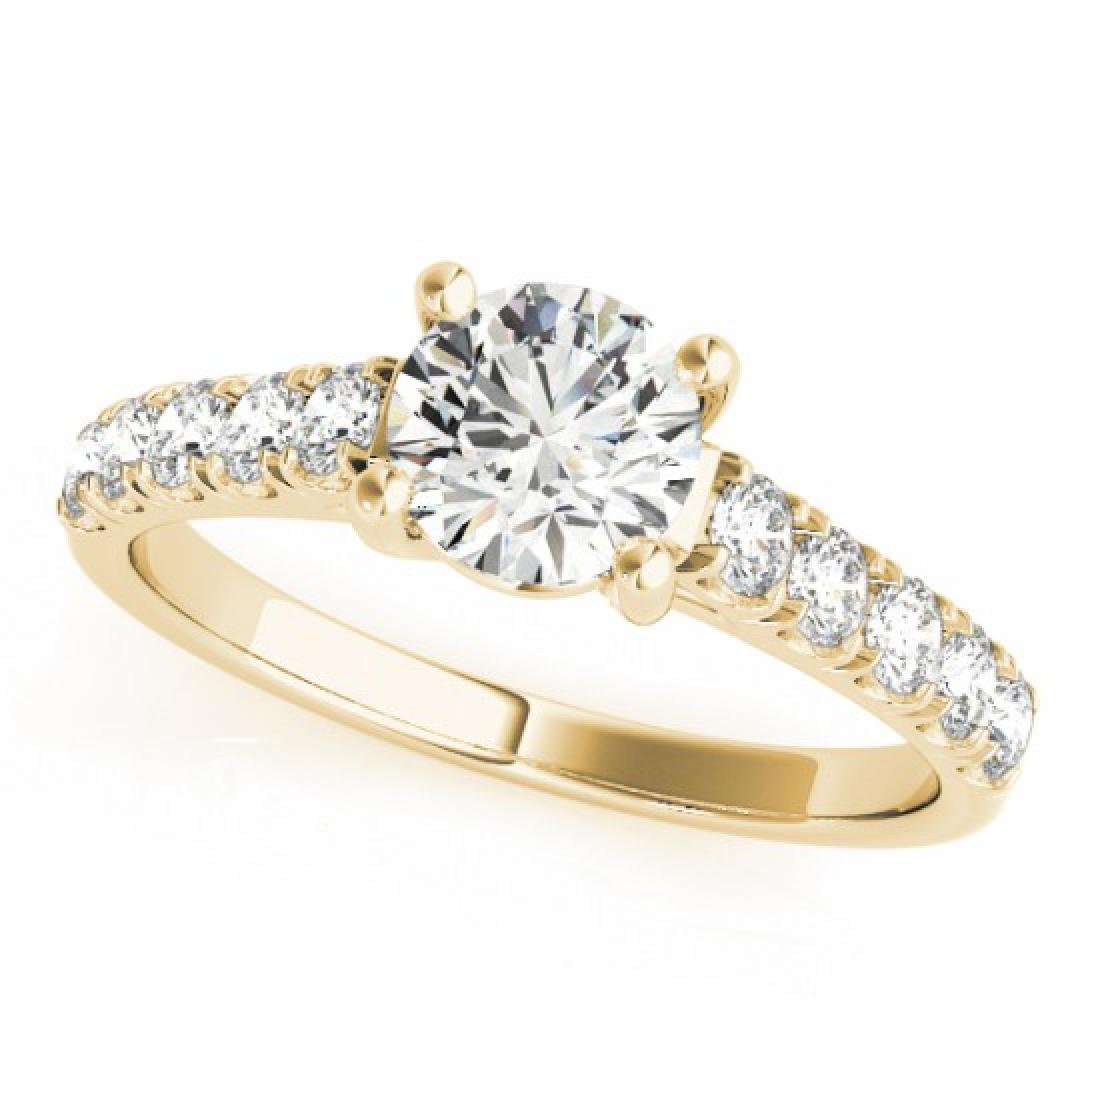 2.1 CTW Certified VS/SI Diamond Solitaire Ring 18K